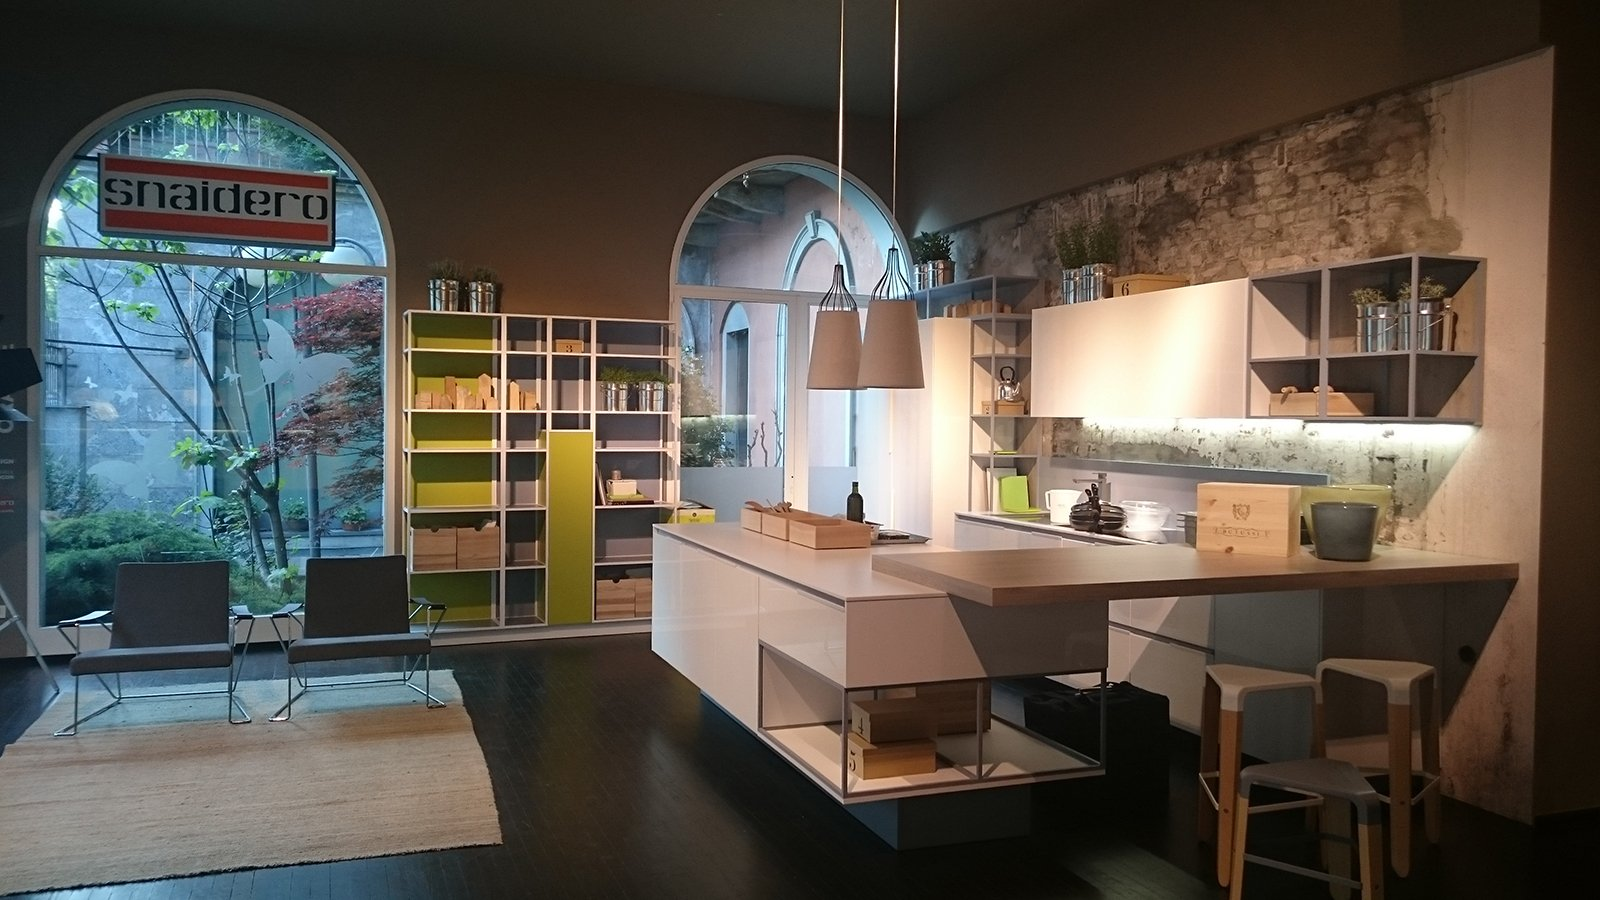 Cucine in mostra al party design food di snaidero cose for Foto di loft arredati